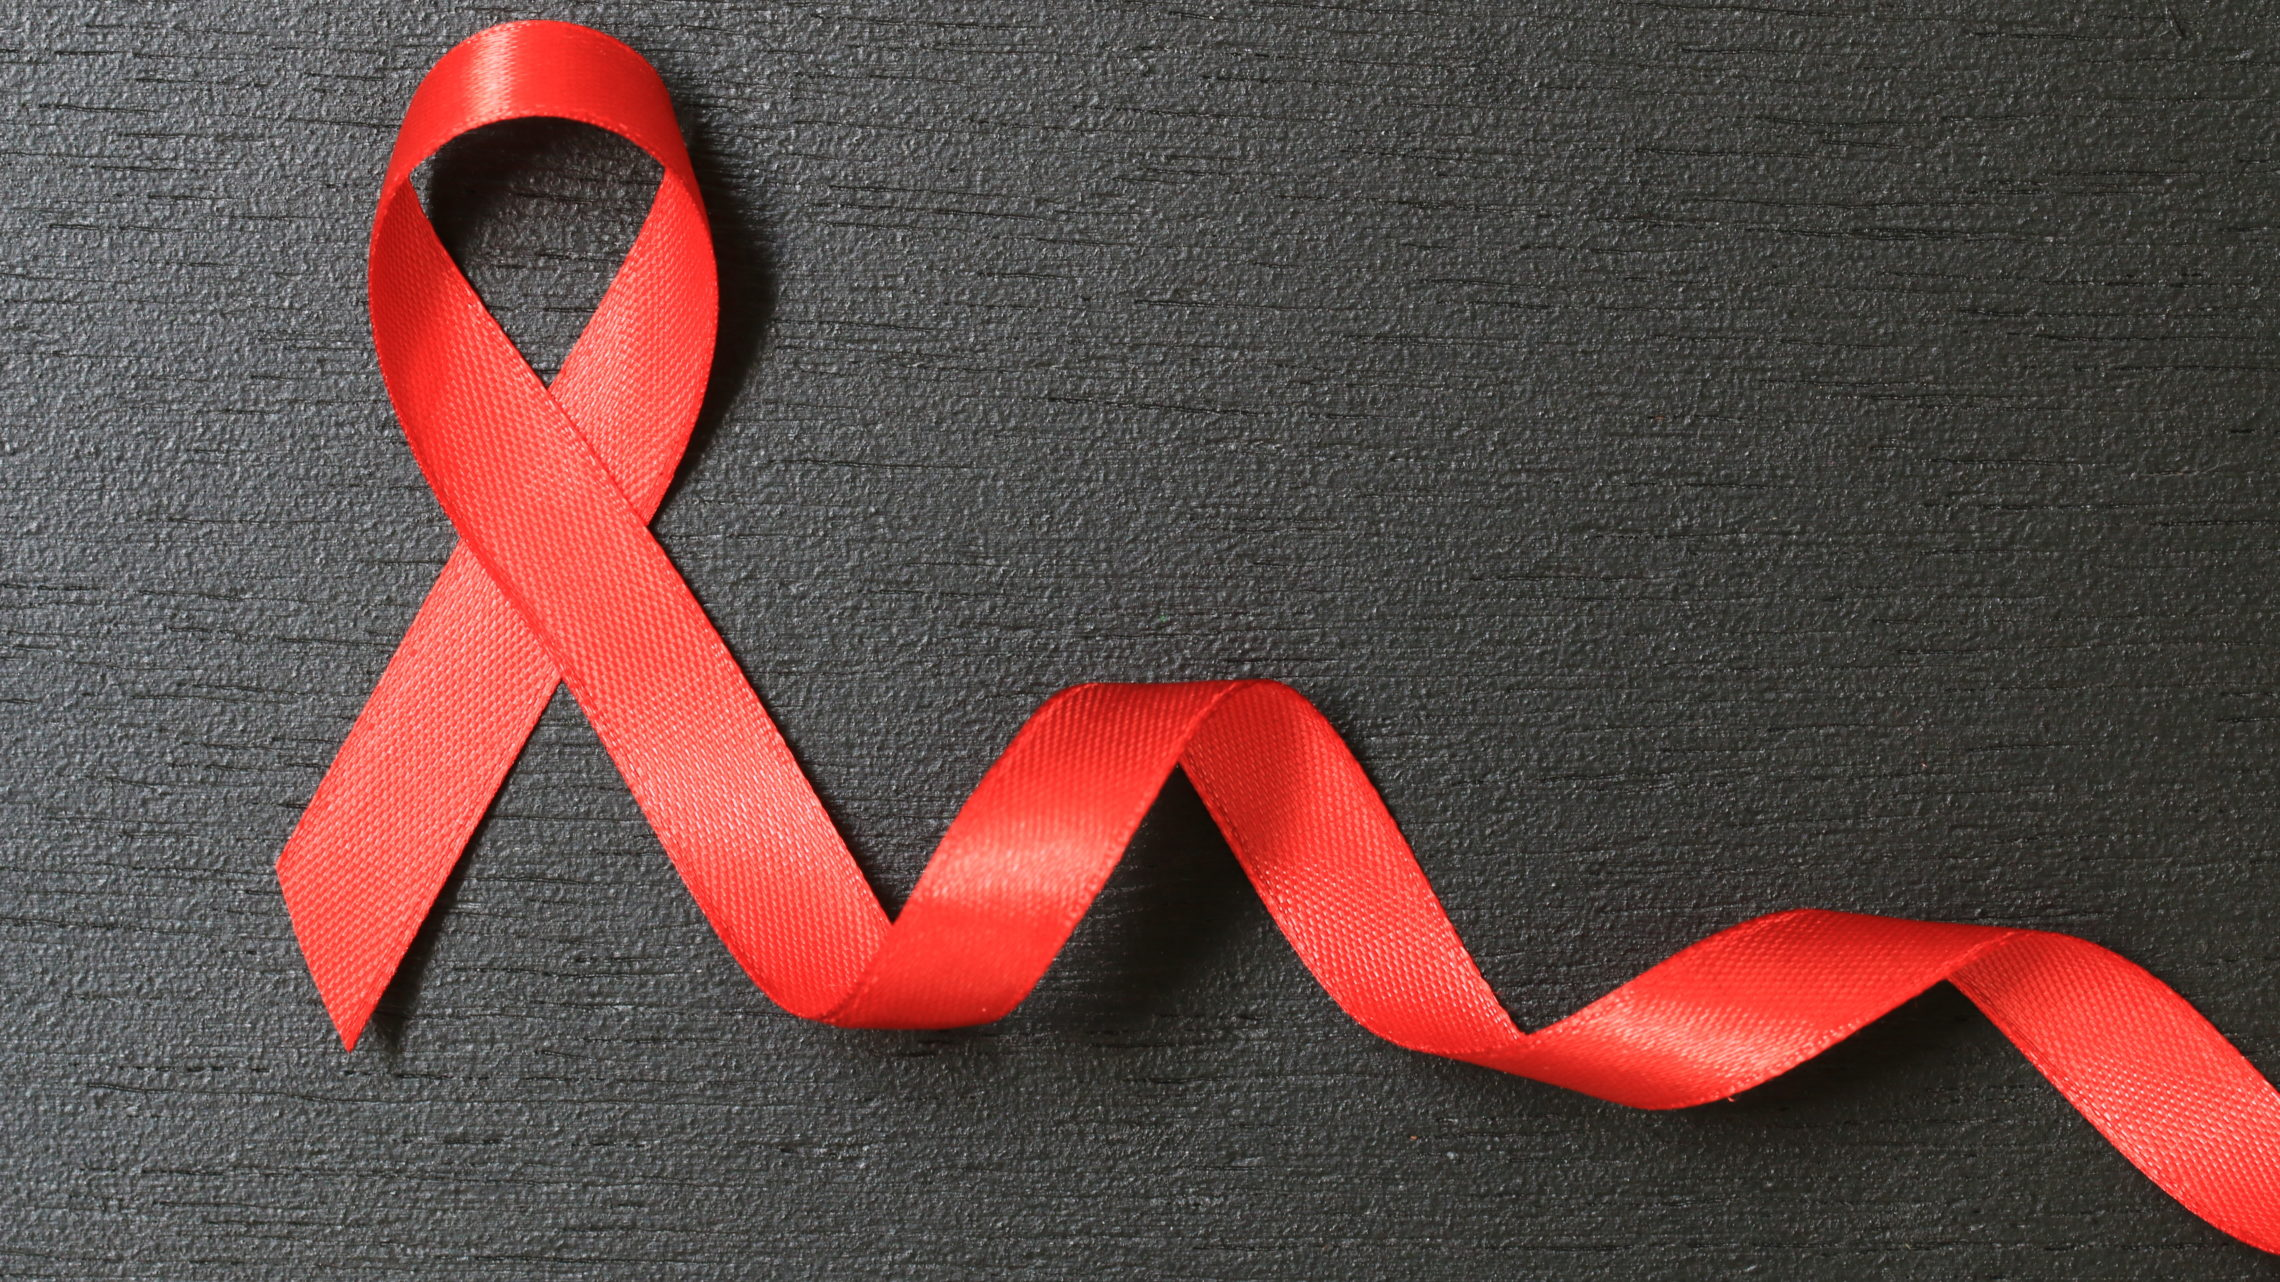 Red Ribbon. Aids Awareness. World Aids Day concept. - Image